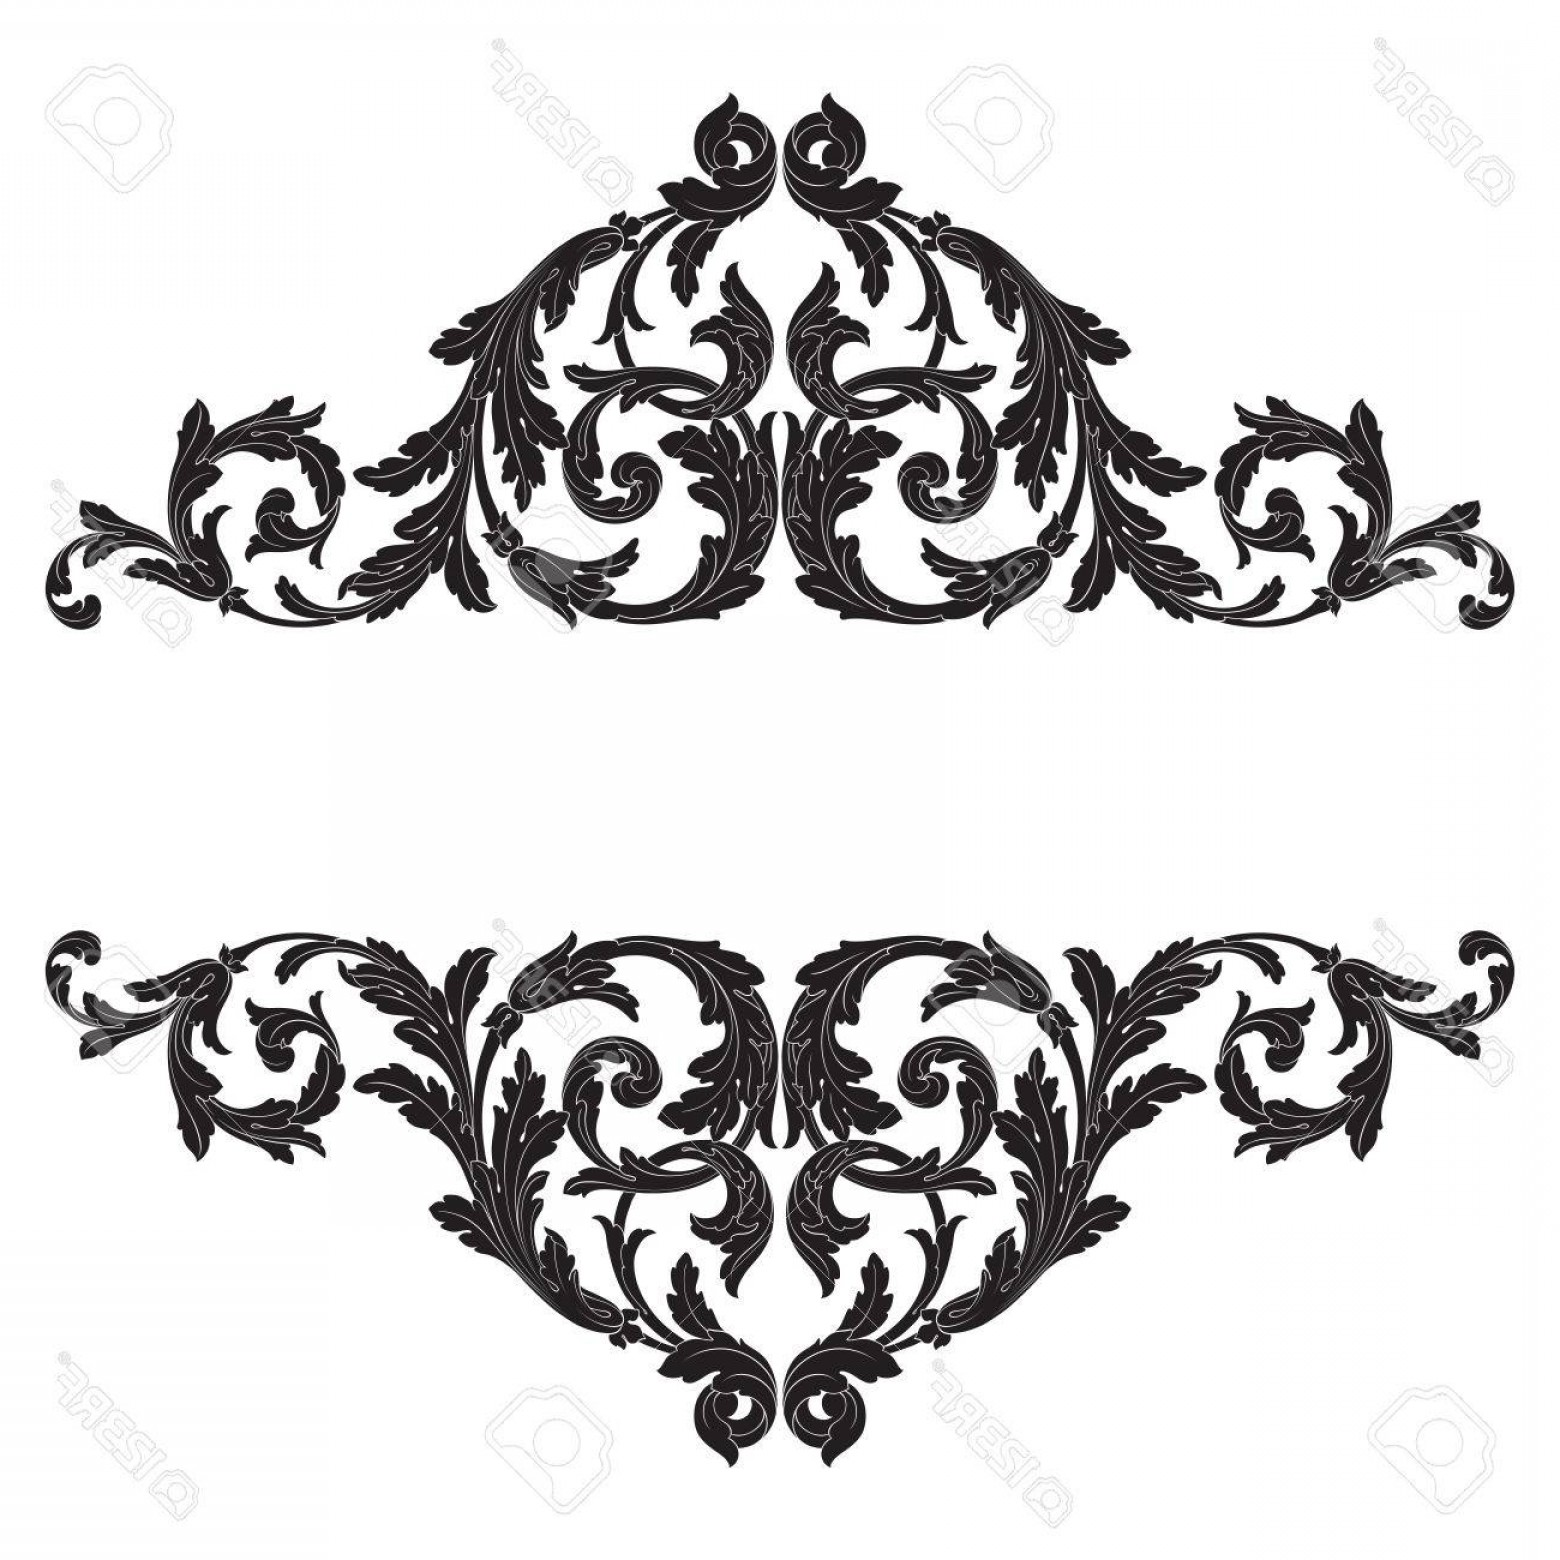 Baroque Vector Clip Art: Photostock Vector Baroque Vector Vintage Elements For Design Decorative Design Element Filigree Calligraphy Vector You